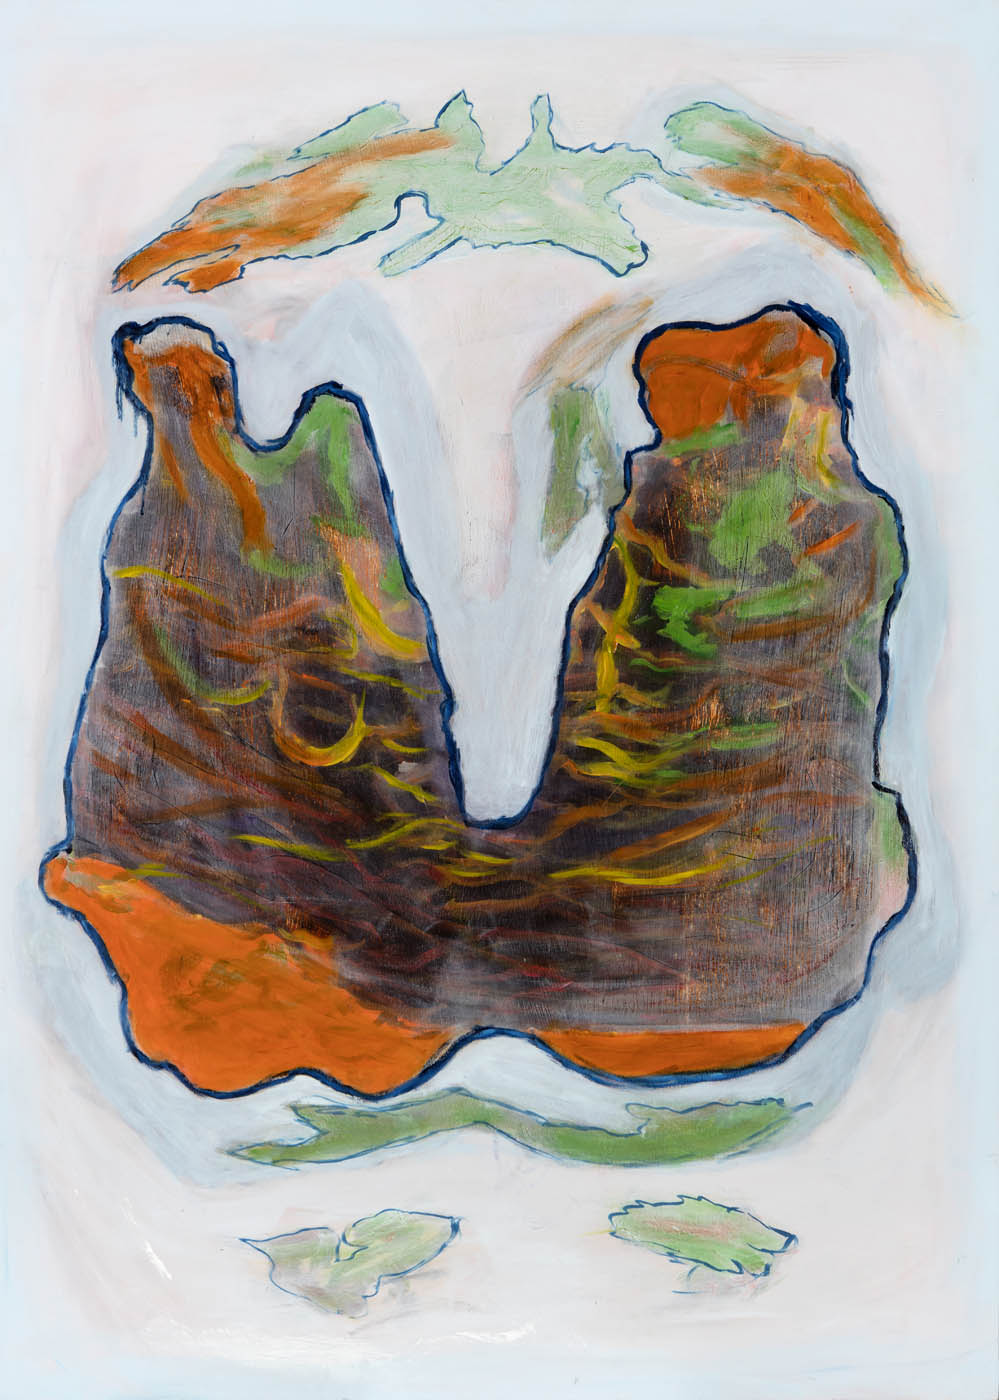 William C. Jenkins - Paint Blot #2